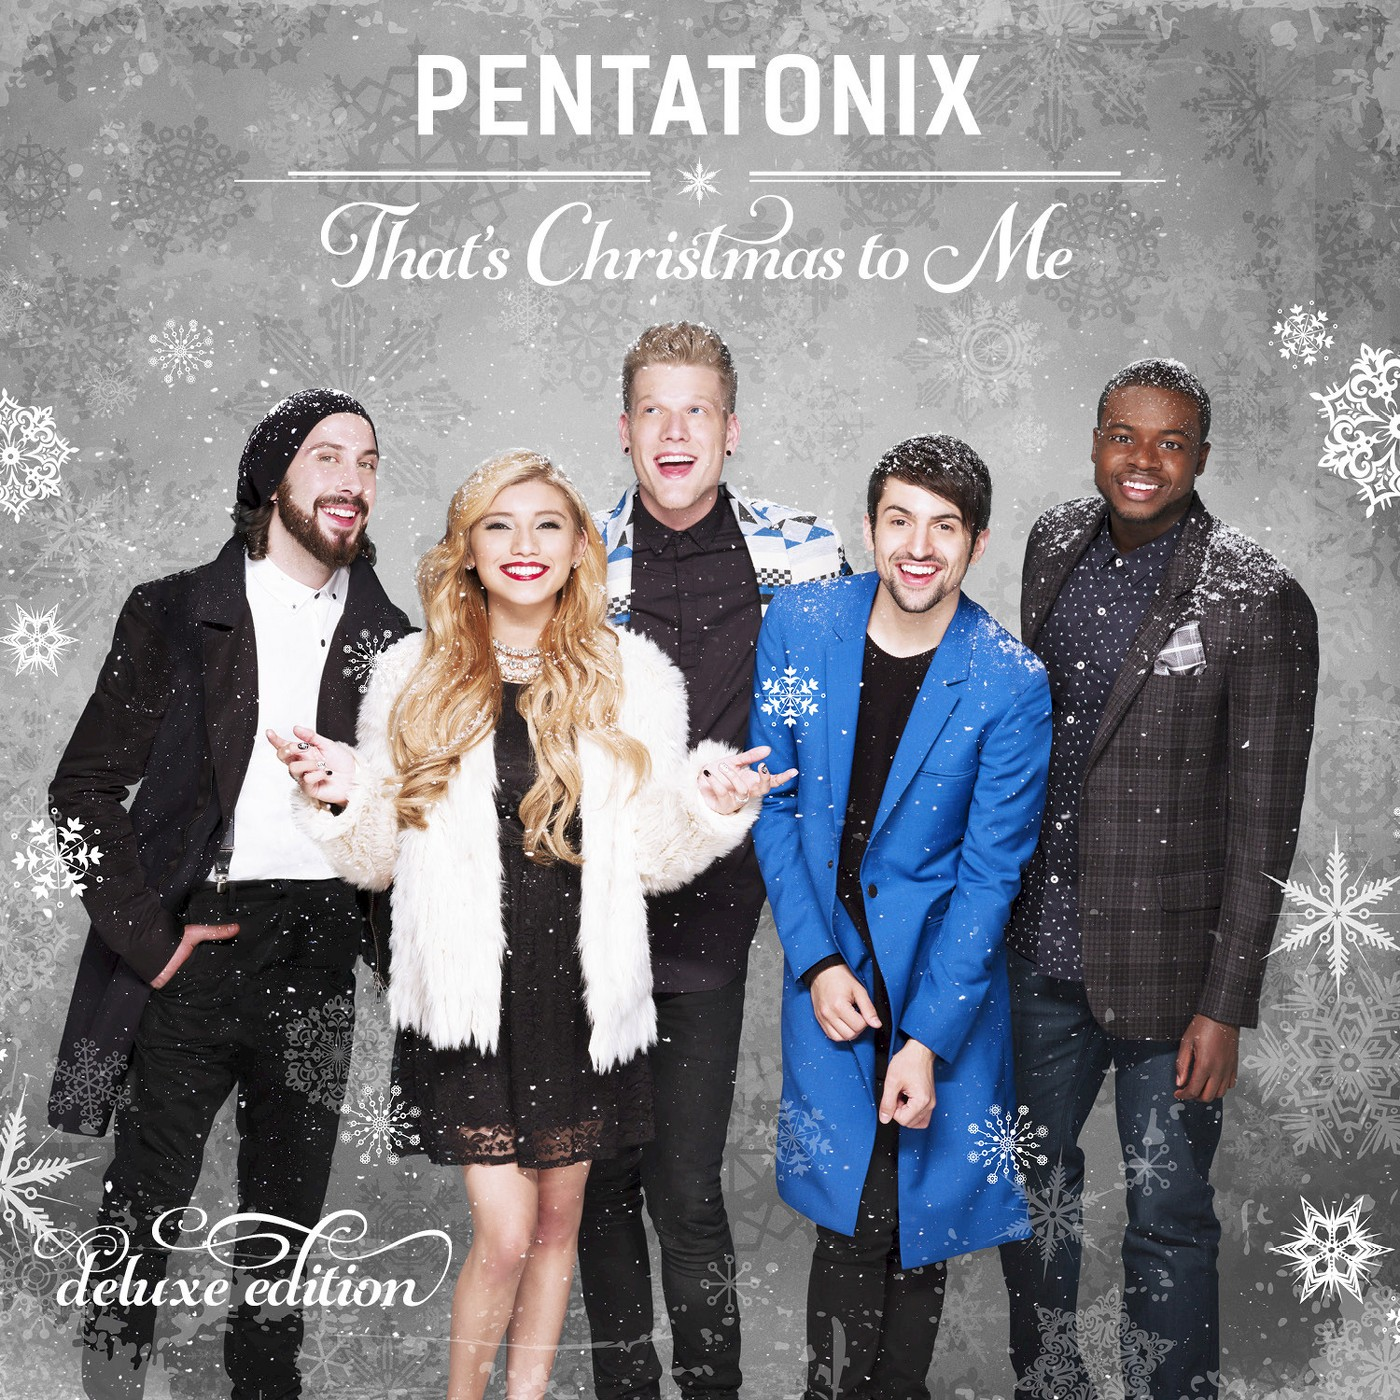 That's Christmas to Me [Deluxe Edition] - image 1 of 1